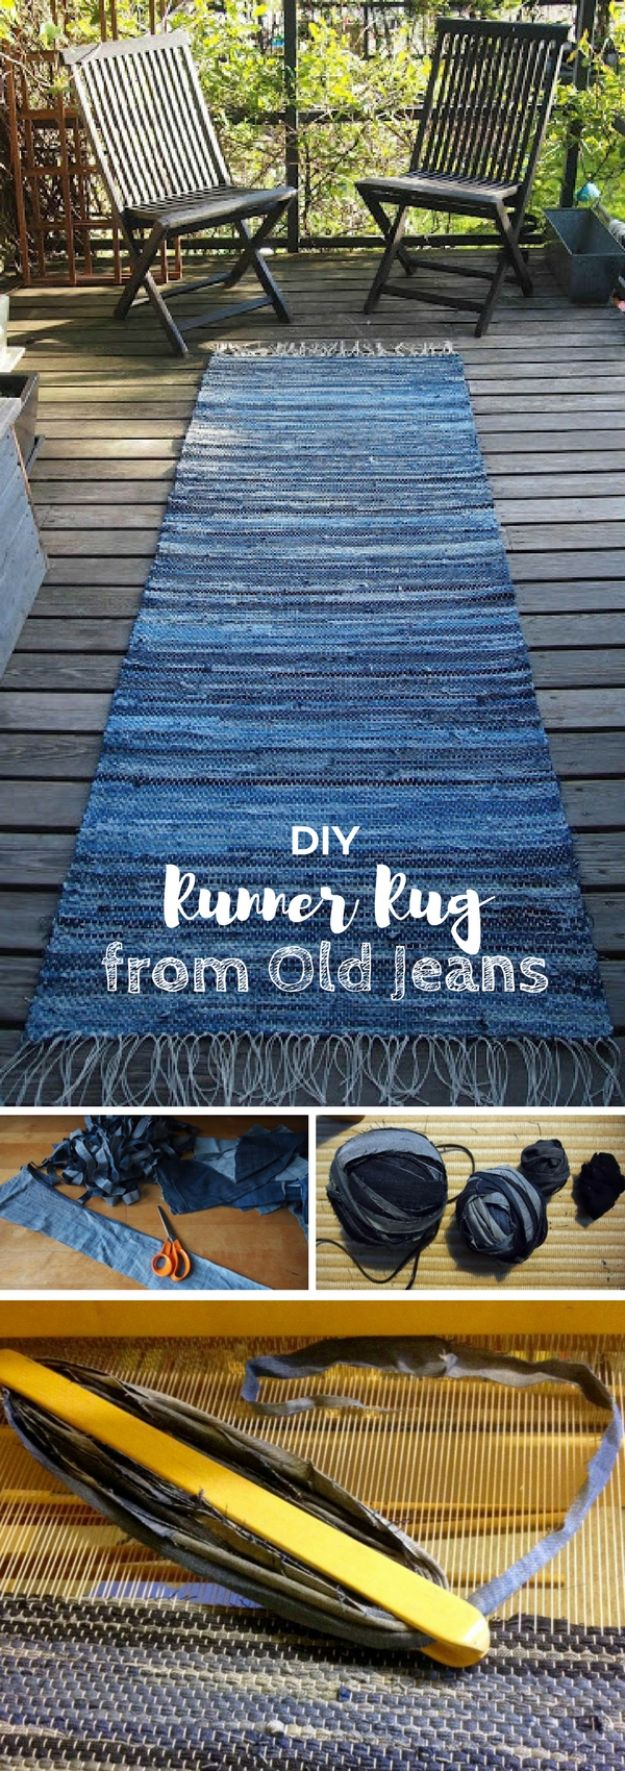 DIY Rugs - Denim Rug From Old Jeans - Ideas for An Easy Handmade Rug for Living Room, Bedroom, Kitchen Mat and Cheap Area Rugs You Can Make - Stencil Art Tutorial, Painting Tips, Fabric, Yarn, Old Denim Jeans, Rope, Tshirt, Pom Pom, Fur, Crochet, Woven and Outdoor Projects - Large and Small Carpet http://diyjoy.com/diy-rug-tutorials